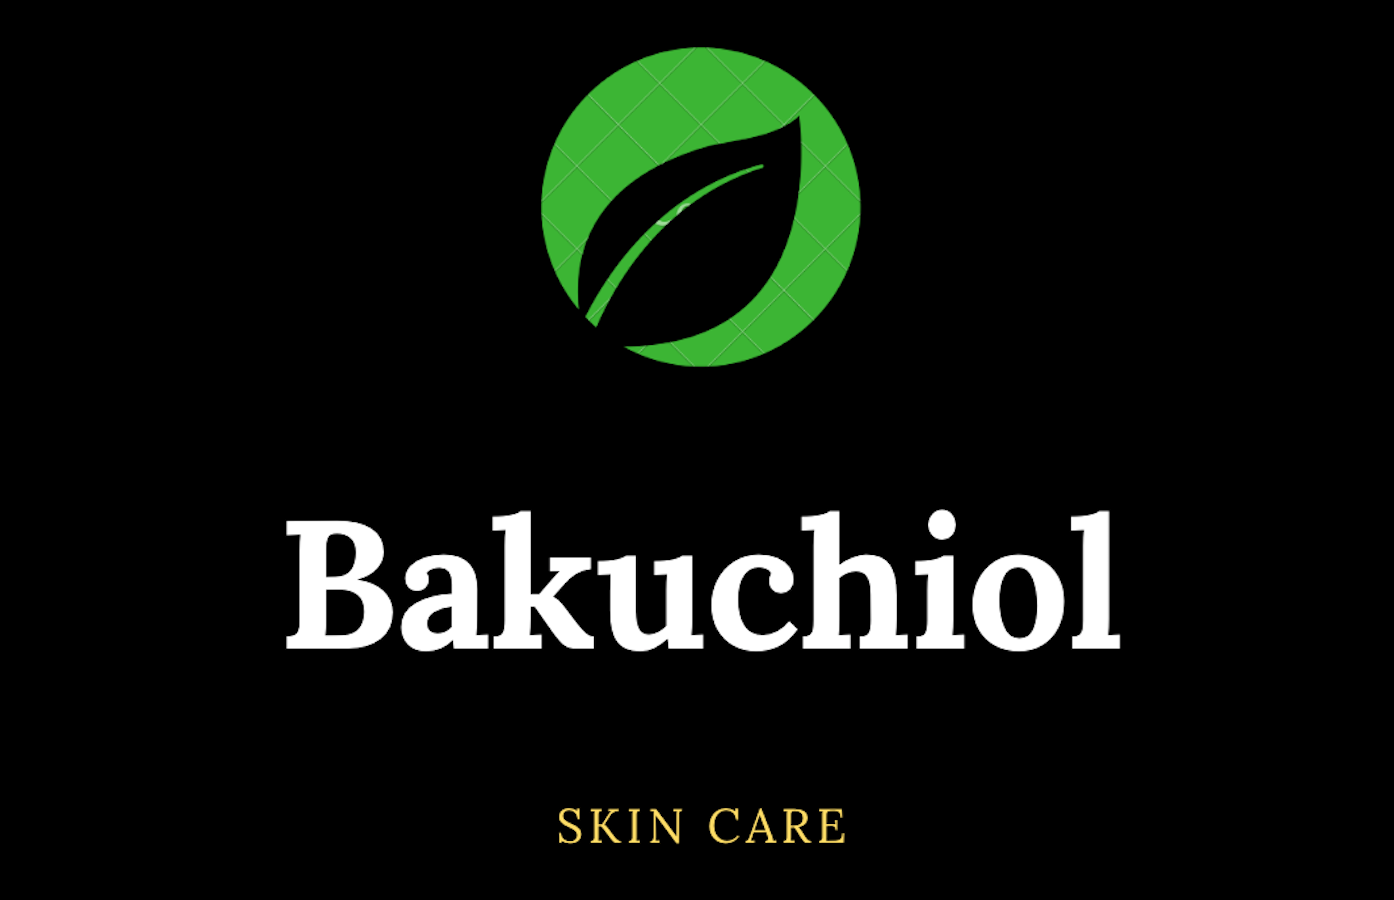 Bakuchiol Skin Care Logo